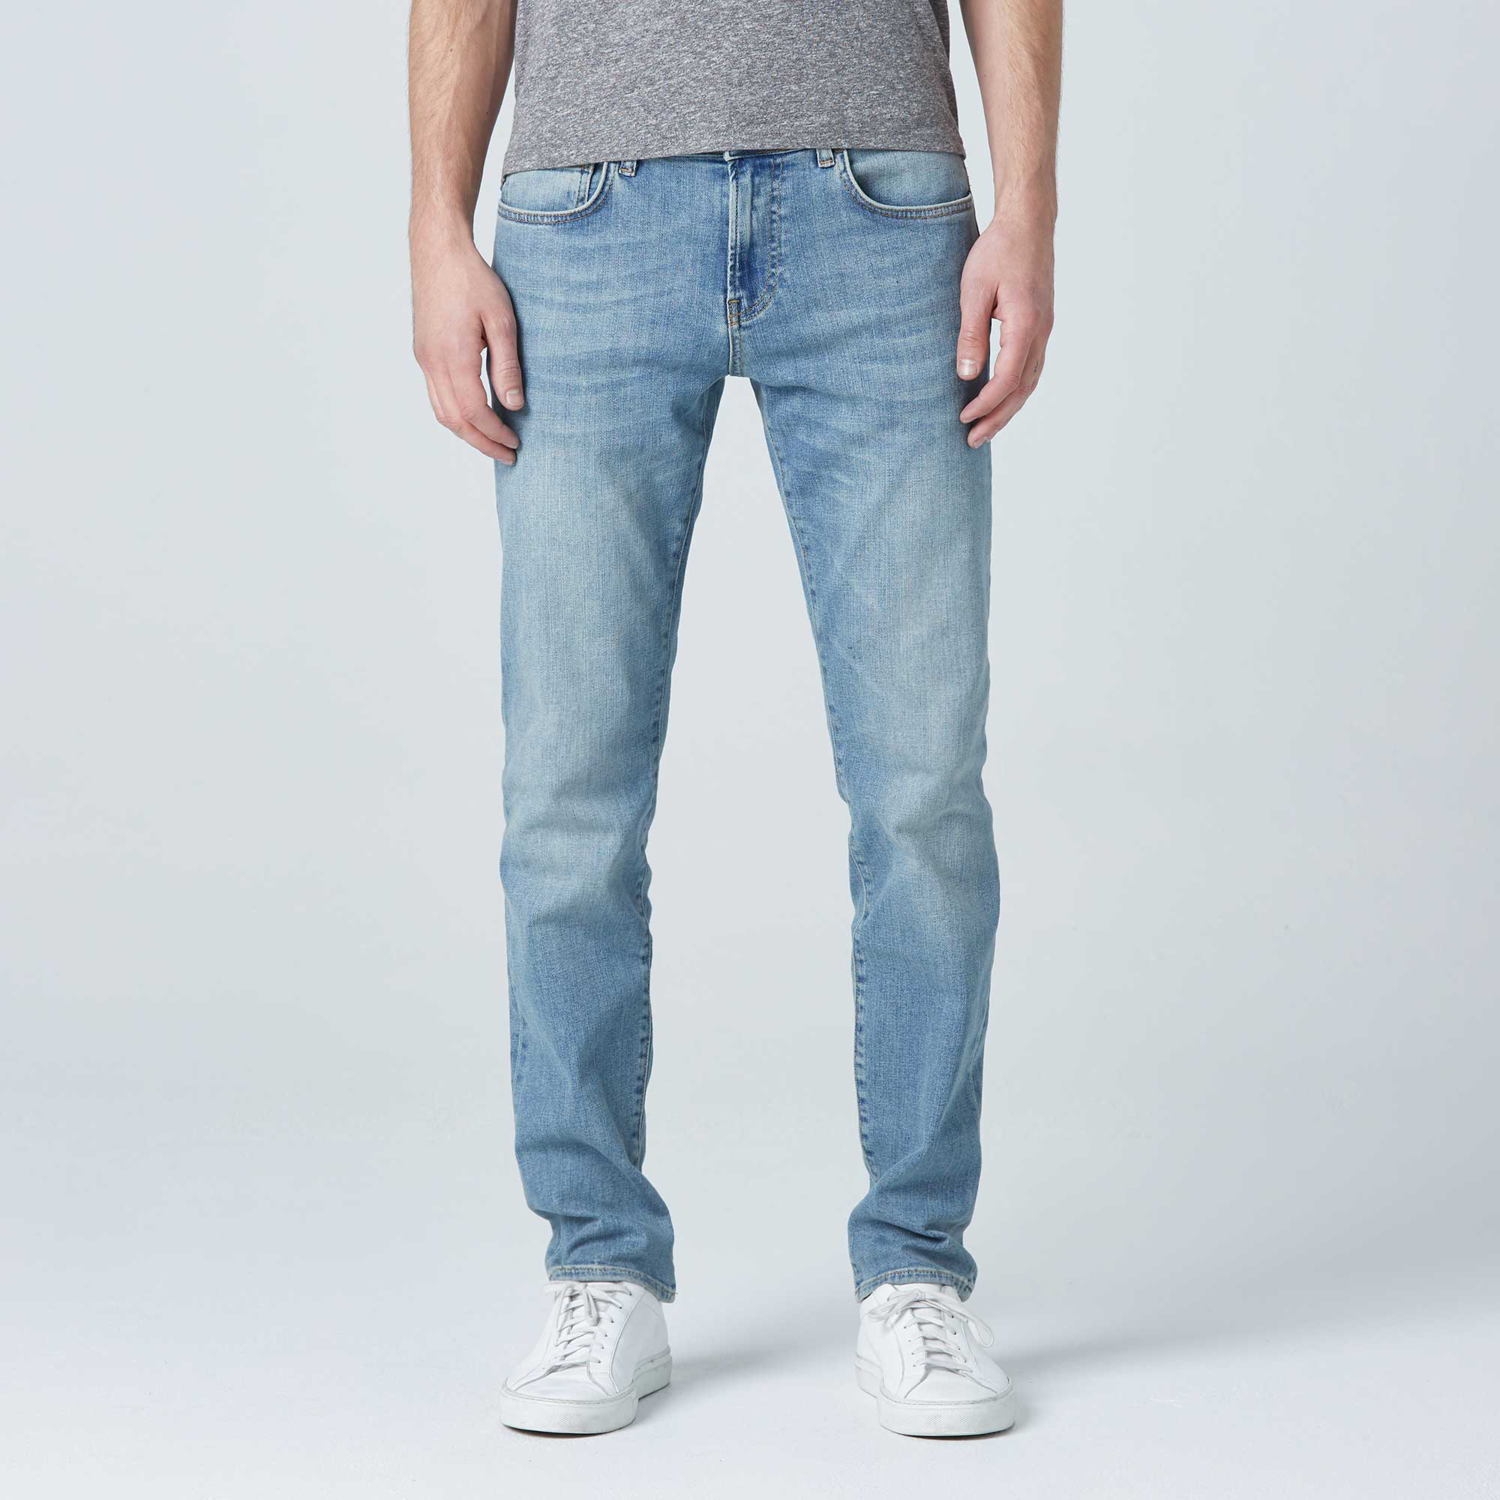 Skinny Slim Jeans in Light Wash